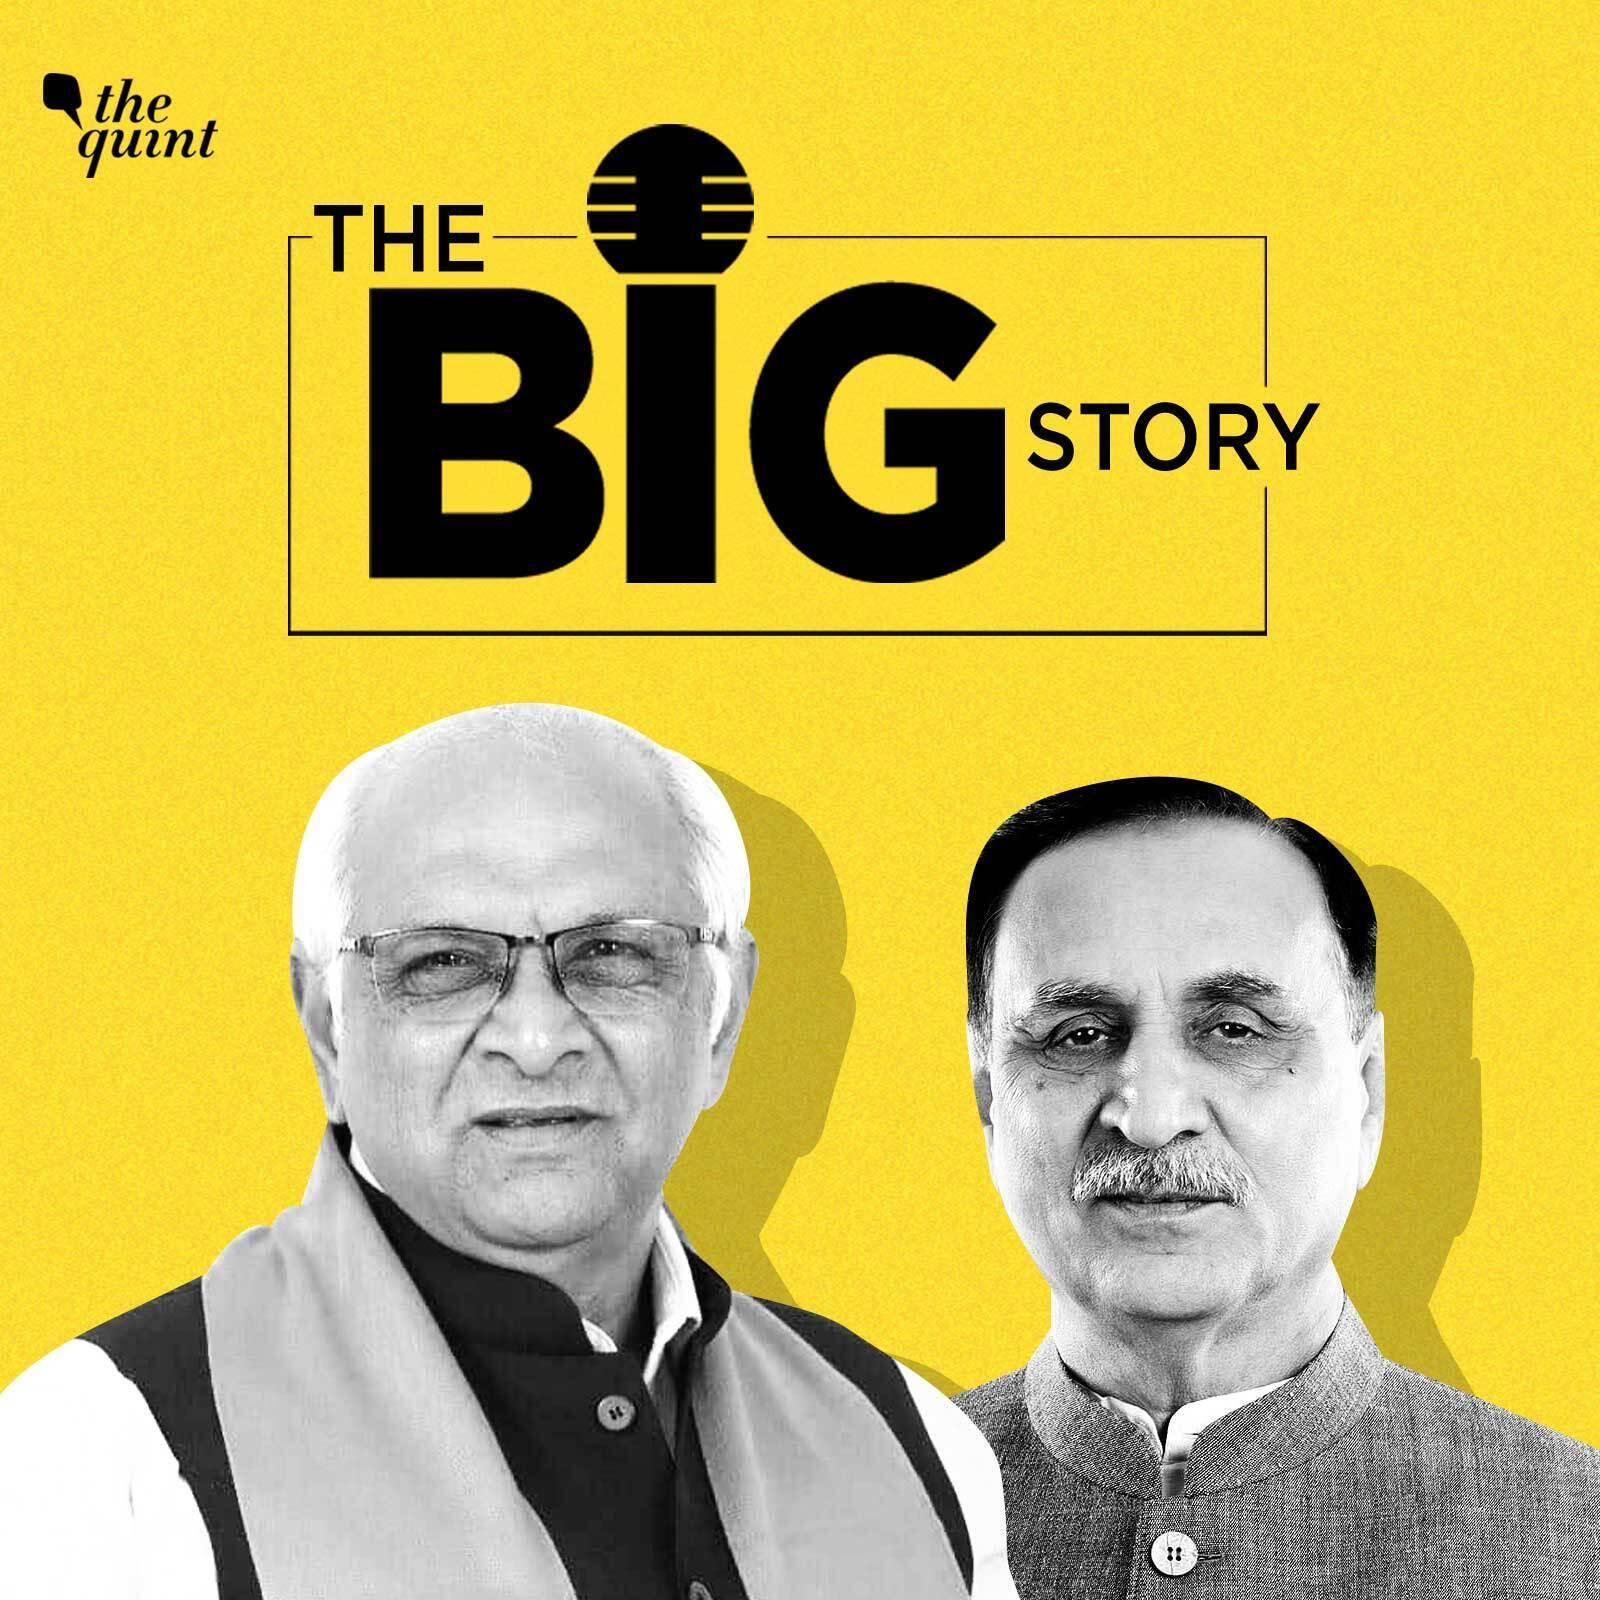 782: Why Was Bhupendra Patel Picked Over Other Contenders As New Gujarat CM?